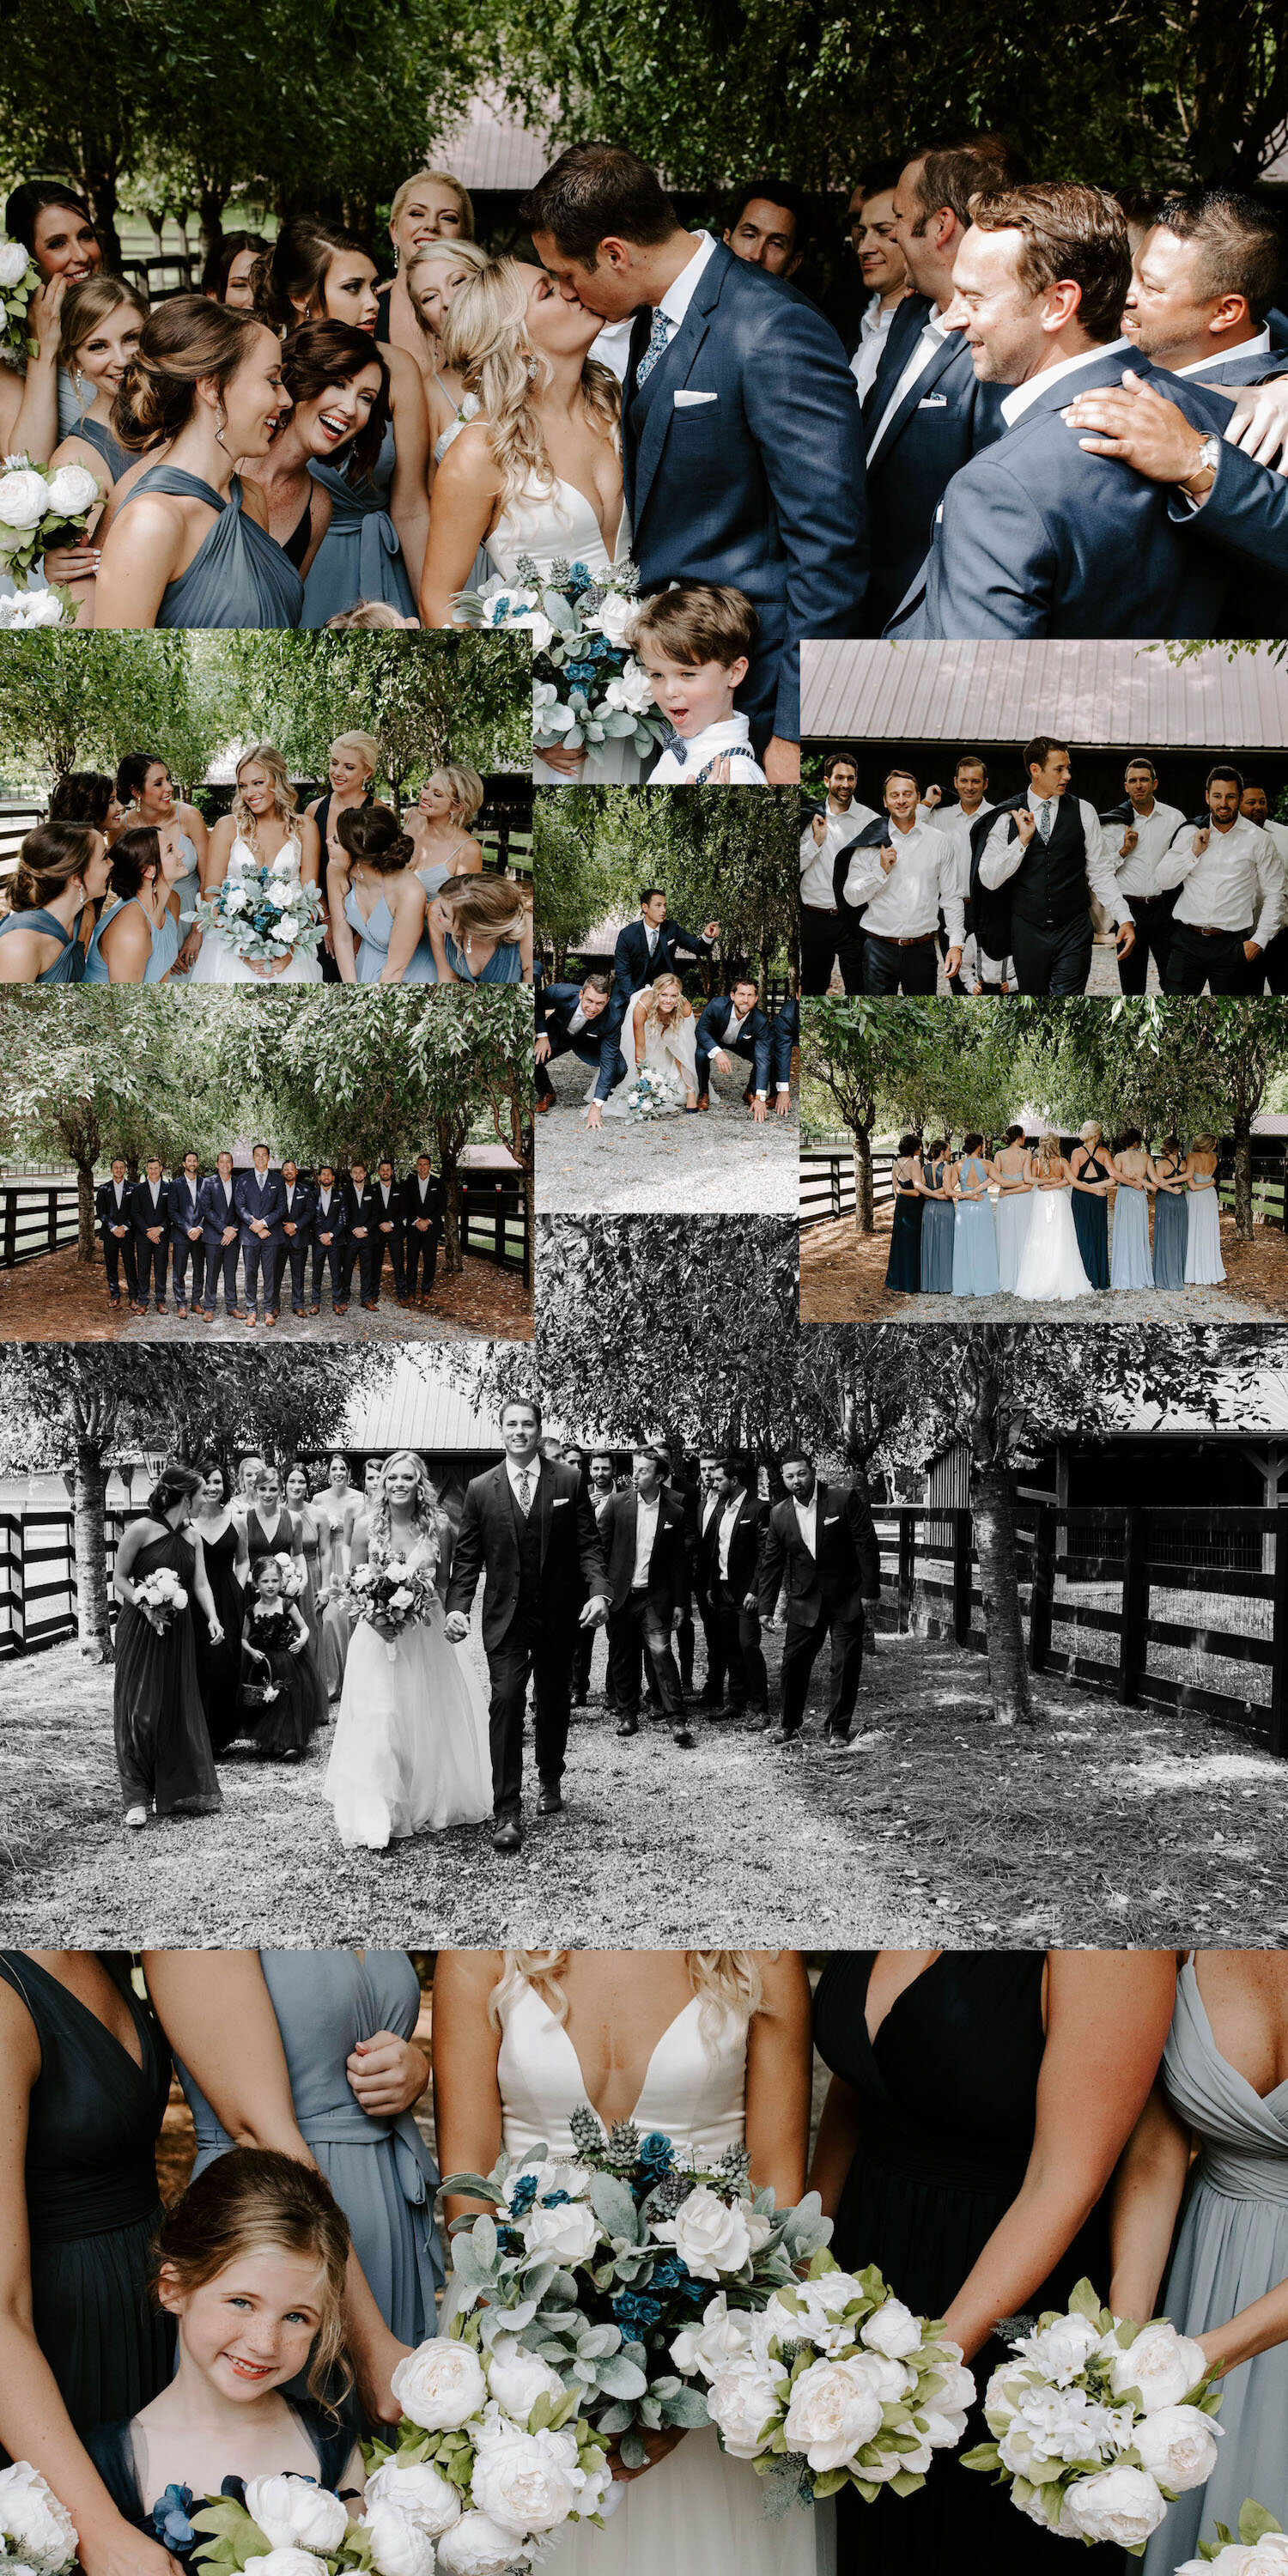 hawksdene-green-summer-wedding5-bridal-groom-party.jpg